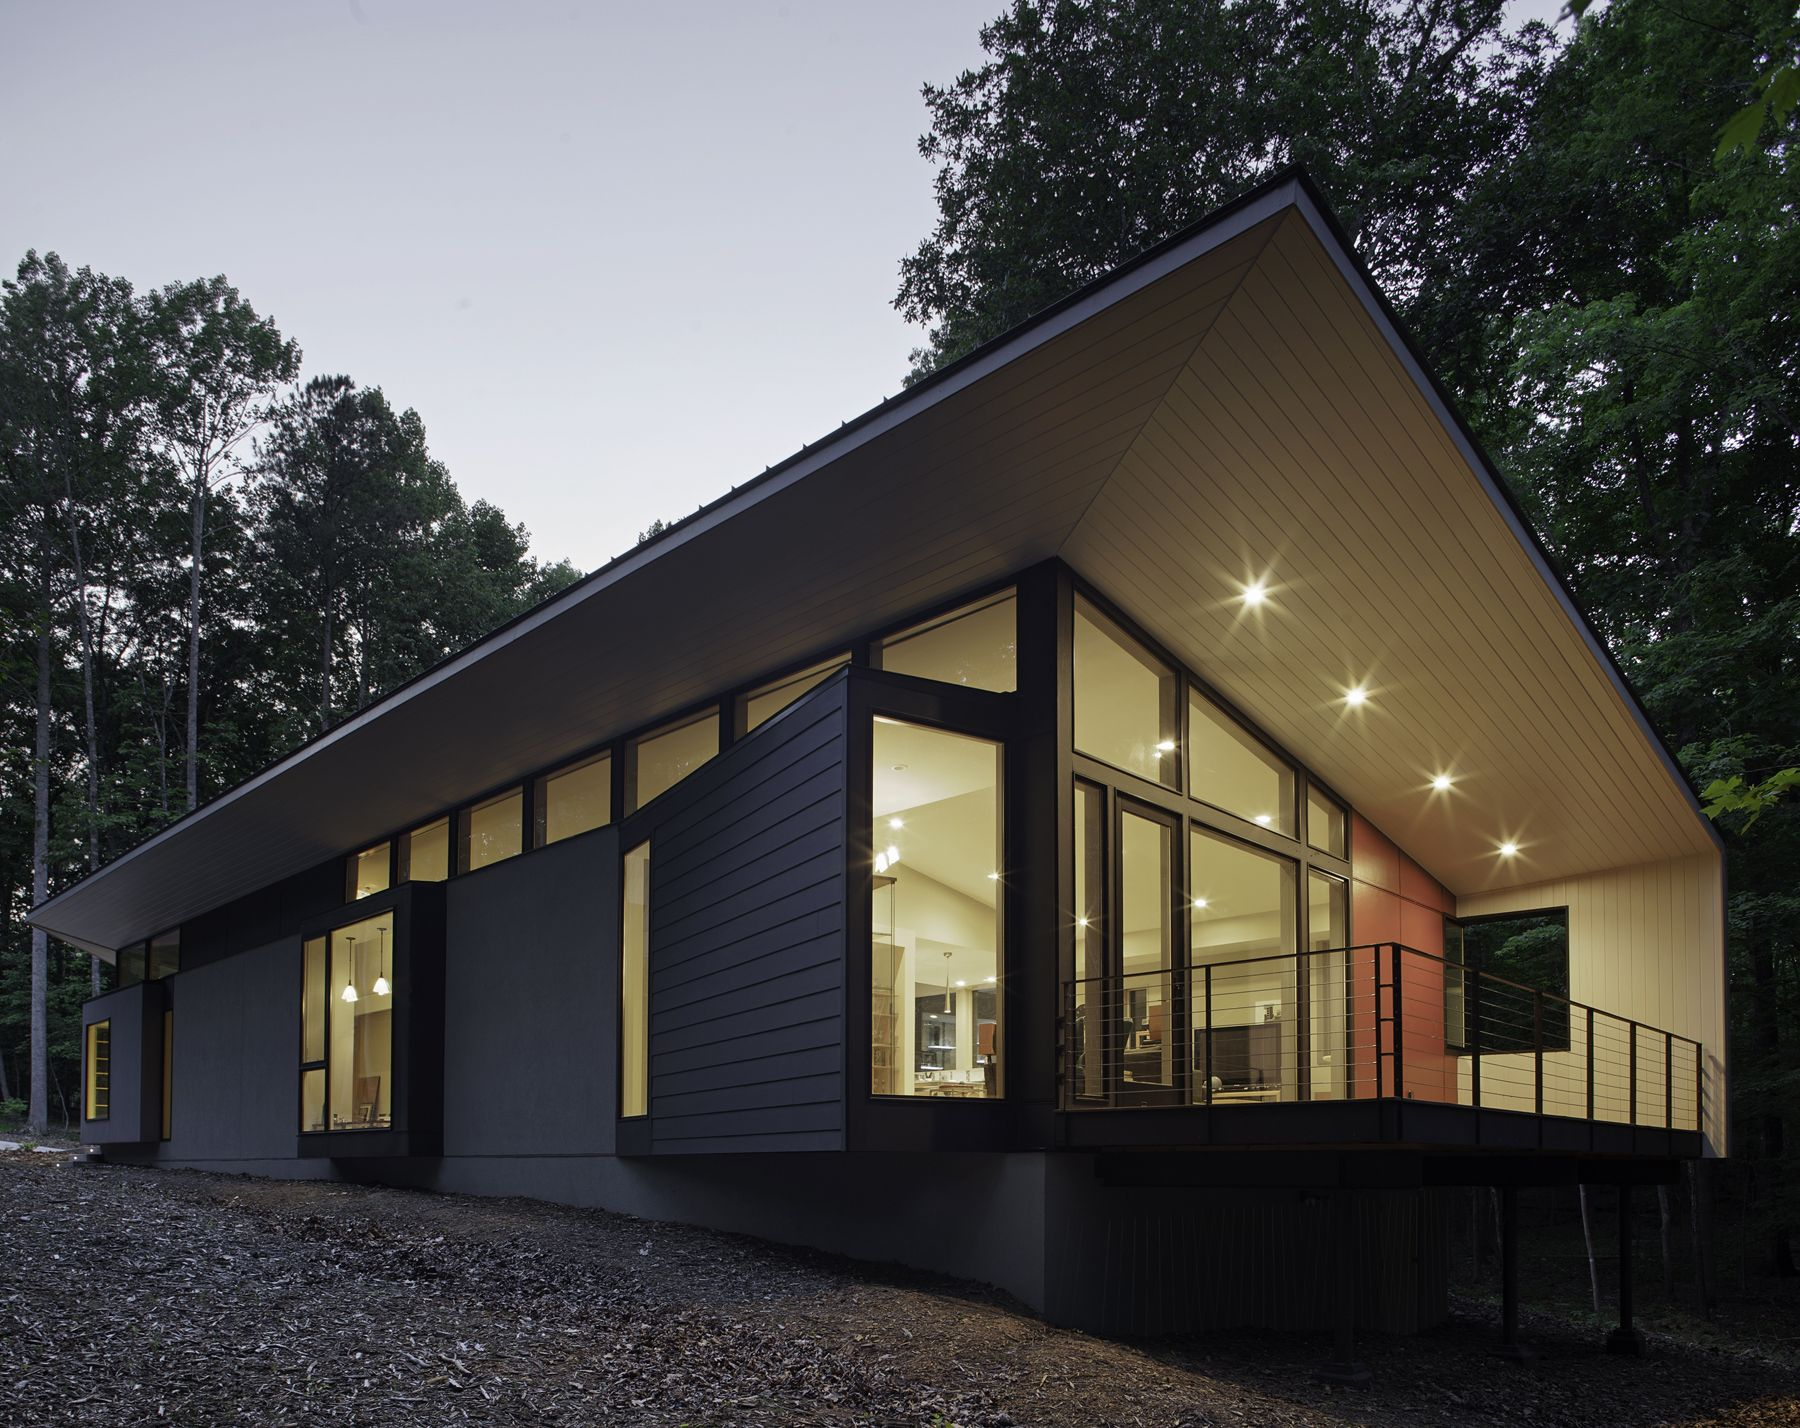 Modern Architecture North Carolina streamlined modern living in the north carolina forest | 12